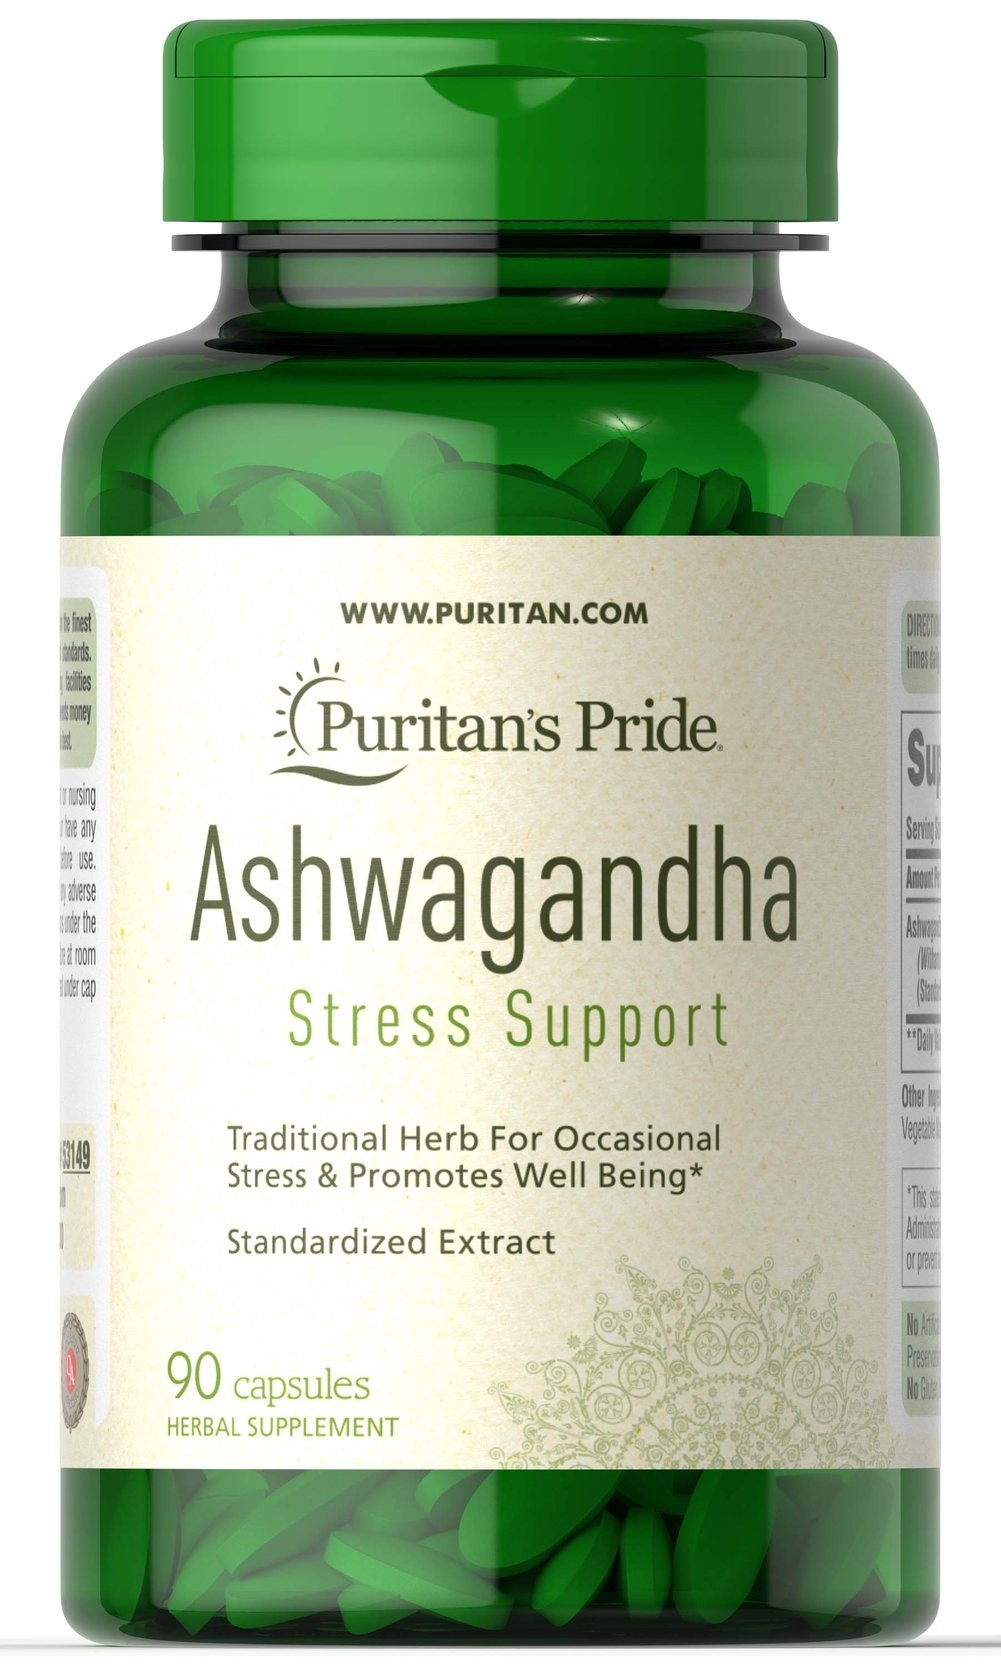 Ashwagandha Root Extract 750mg Ayurvedic Inspired <p></p><p>Ayurveda is one of the world's oldest and most complex systems encompassing many aspects of health and wellness, often using natural ingredients and techniques. Ashwagandha is a traditional Ayurvedic herb that is known for its goodness as a refresher.  Ashwagandha has also been called 'Indian Ginseng'.** </p><p>Our Ashwagandha Root Capsules are inspired by the rich history of traditiona